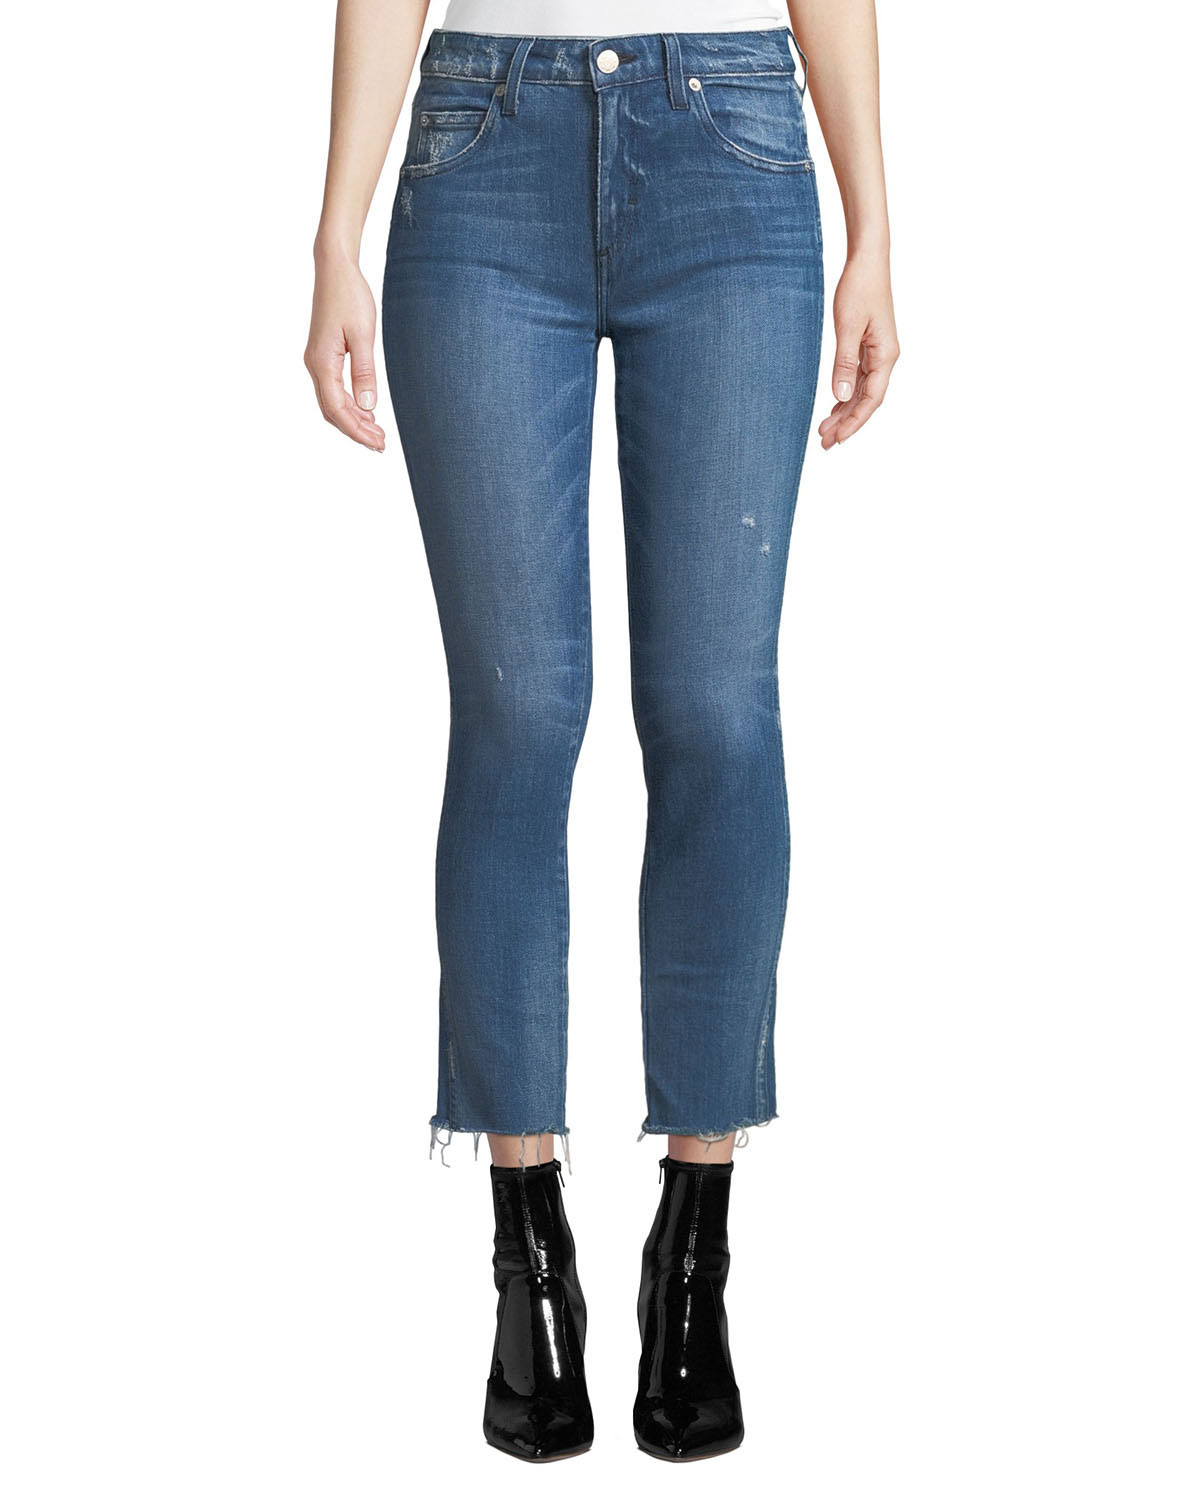 AMO DENIM Stix Mid-Rise Cropped Skinny Jeans in Pacific